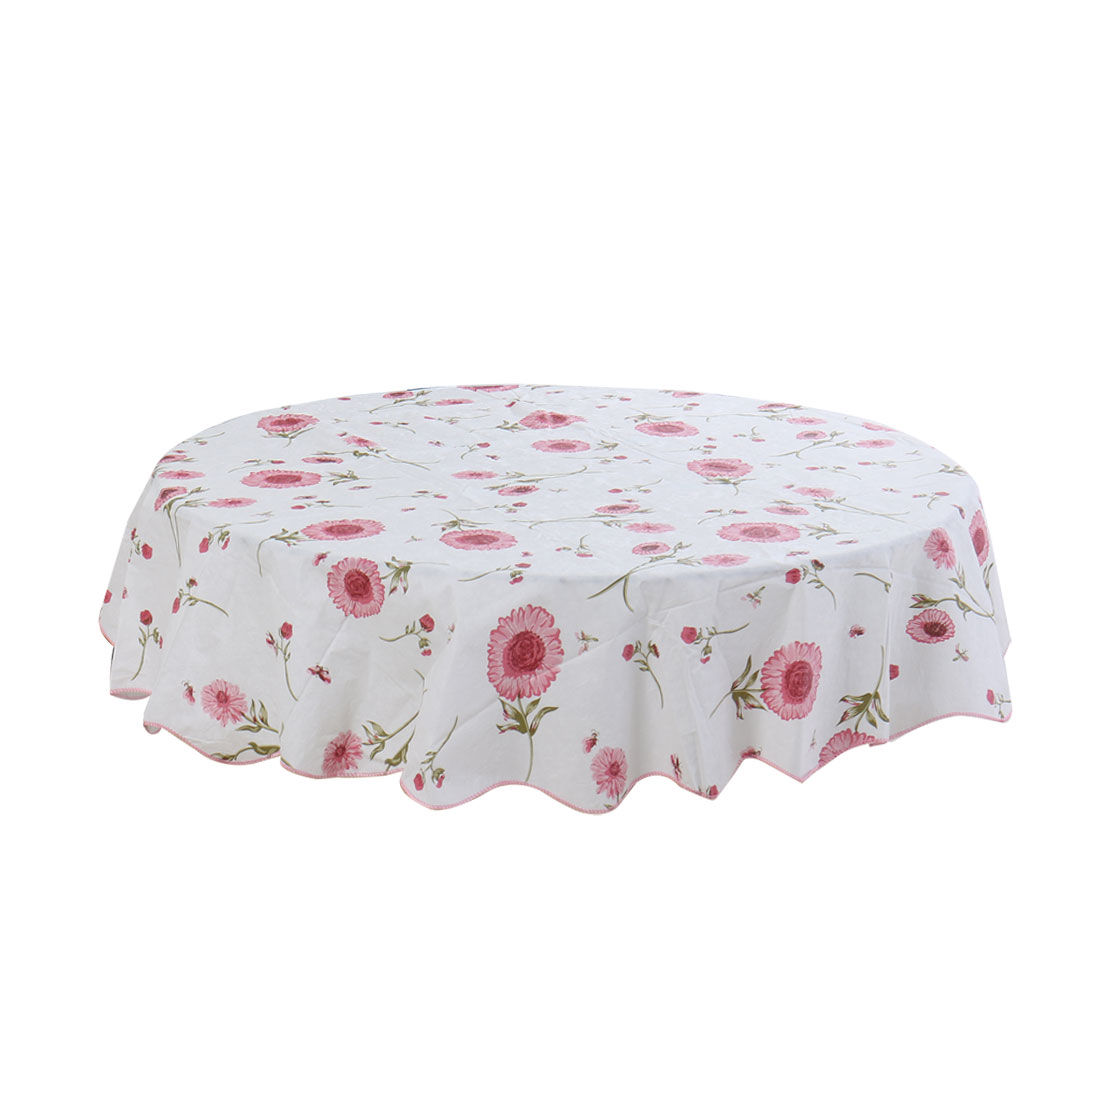 Pink Sunflower Pattern Round 60 Inch Tablecloth Cover Water/Oil Stain Resistant